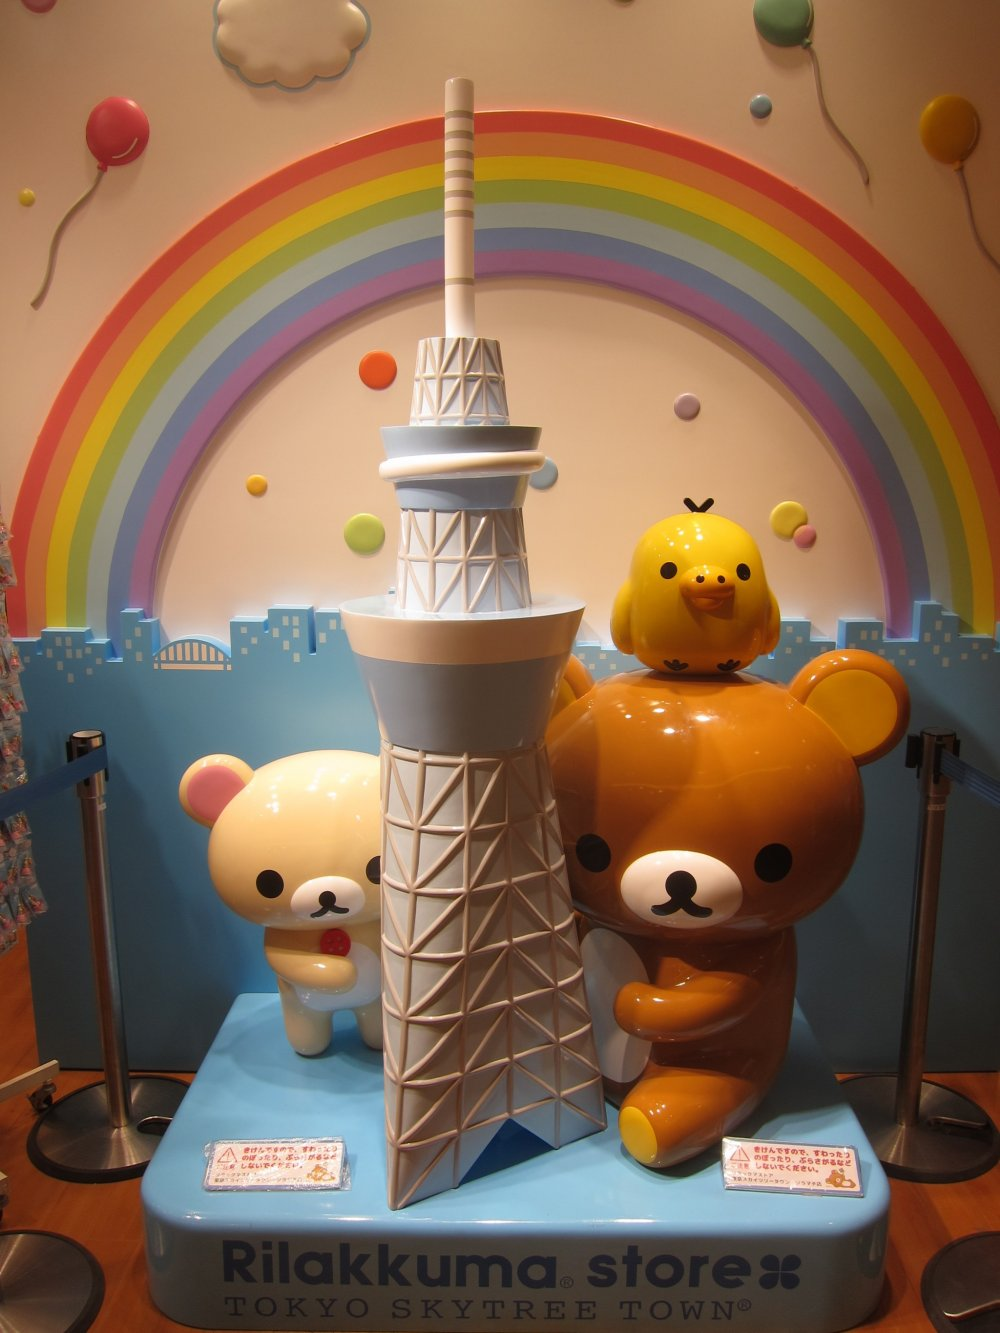 Rilakkuma and friends store front